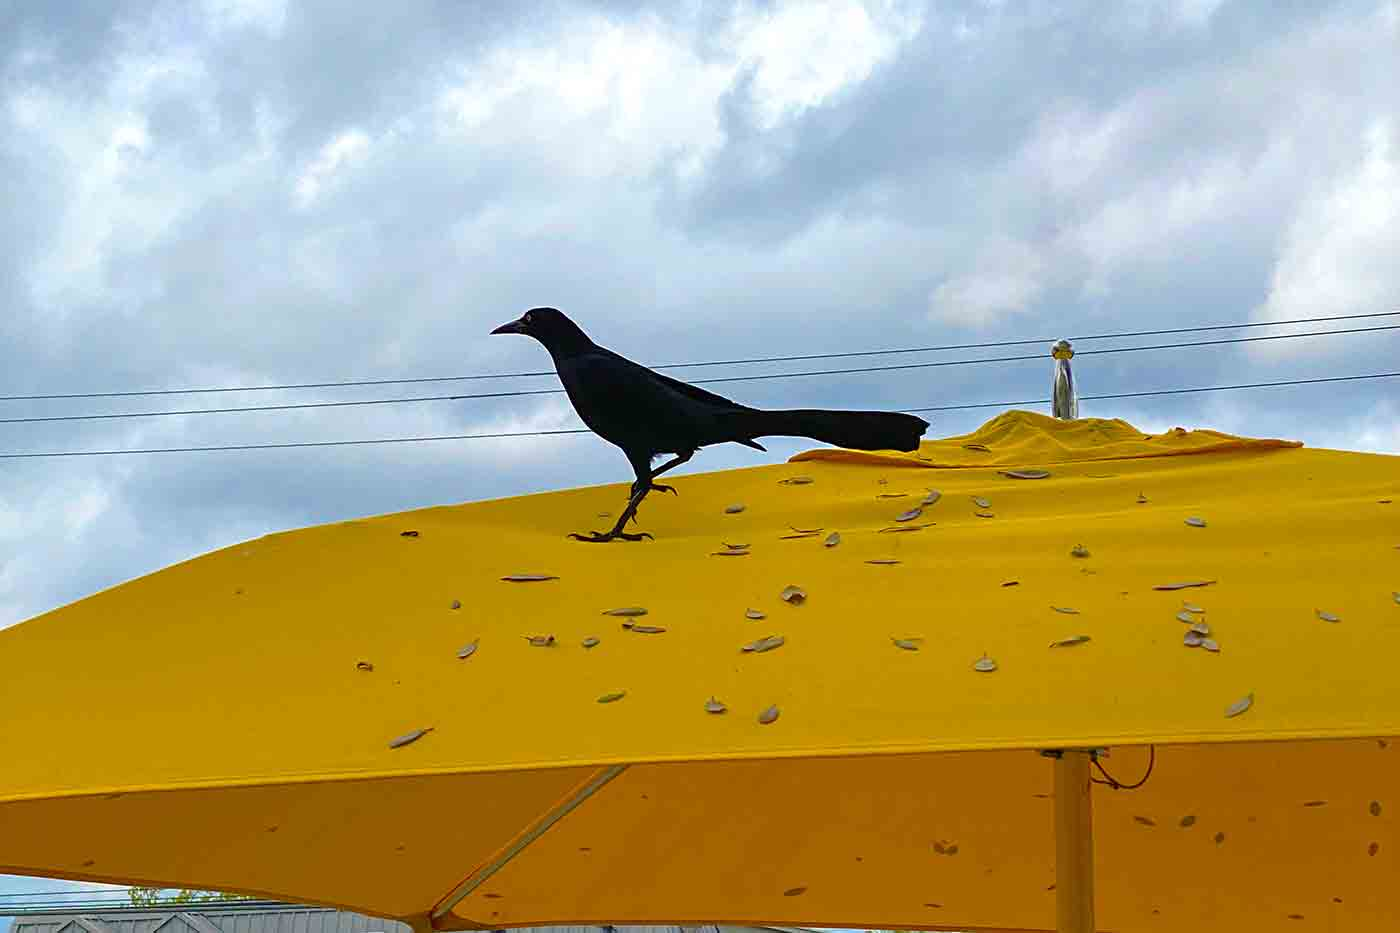 grackle perched on an umbrella at Tacodeli